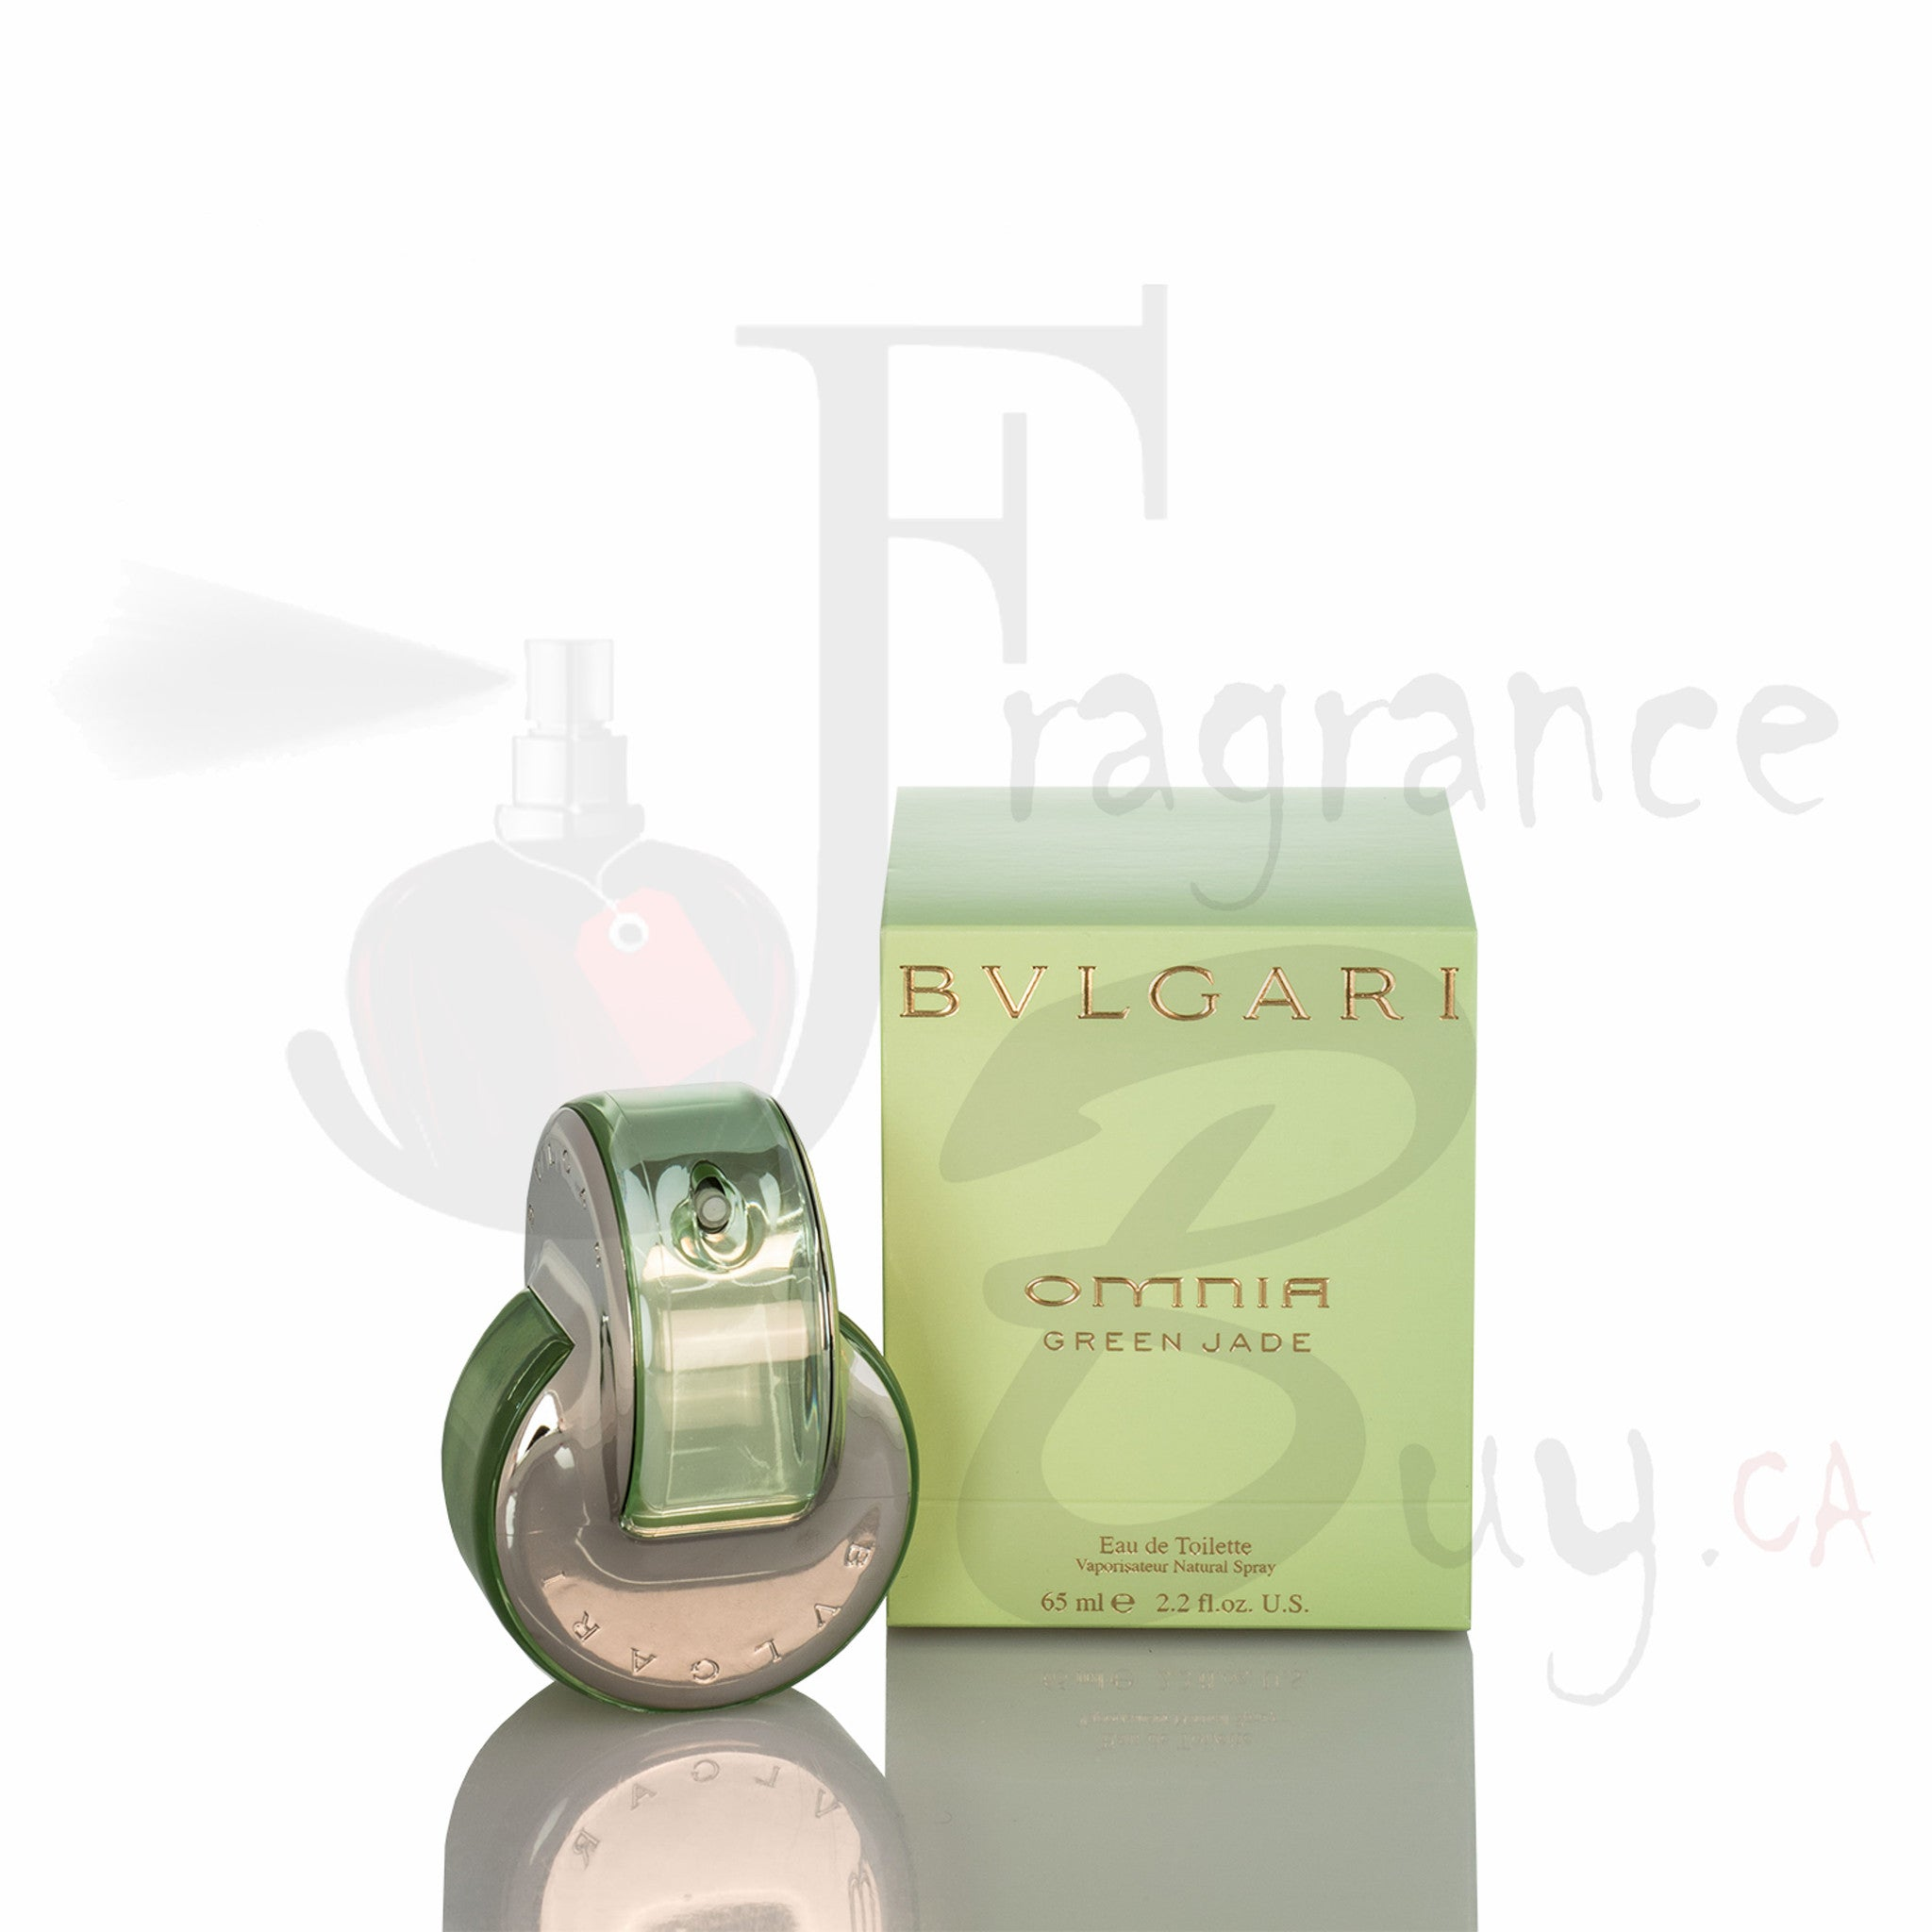 Bvlgari Omnia Green Jade For Woman